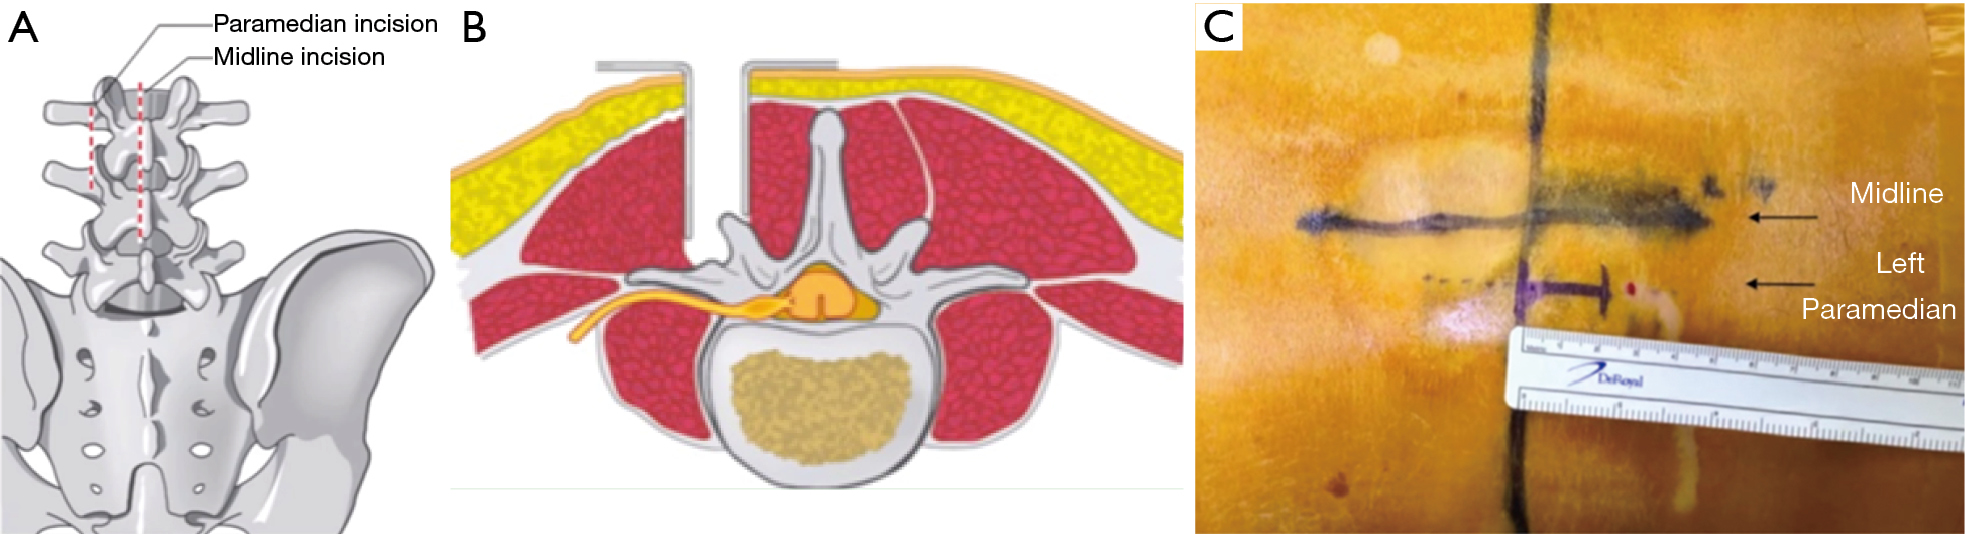 figure 2 a 2 cm paramedian incision is made lateral to the midline to access the herniation from outside the spinal canal